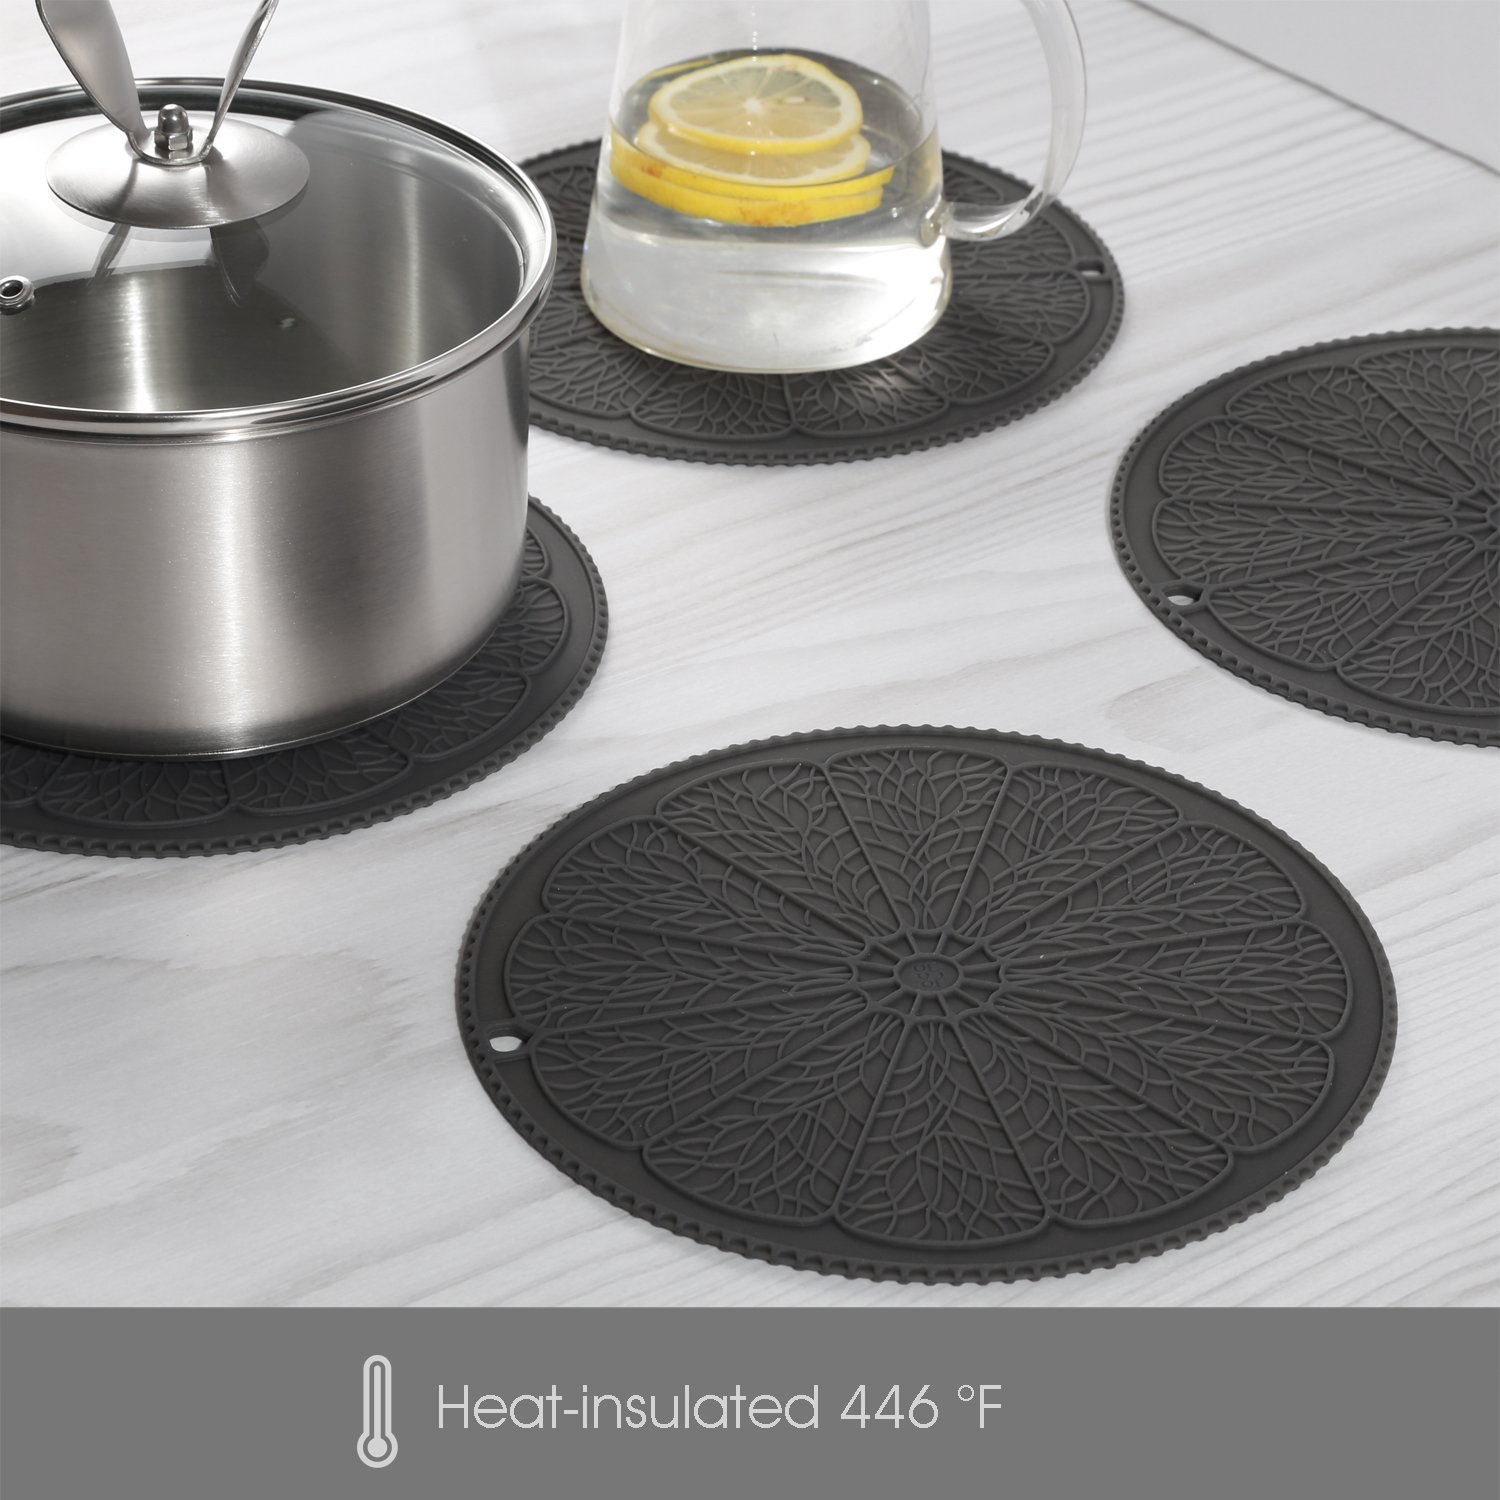 Silicone Trivet (4-Piece Set) for Hot Pots, Dishes and Pans, Insulated Durable Hot Pads, Hot Holder(Gray) - IDDOMUM